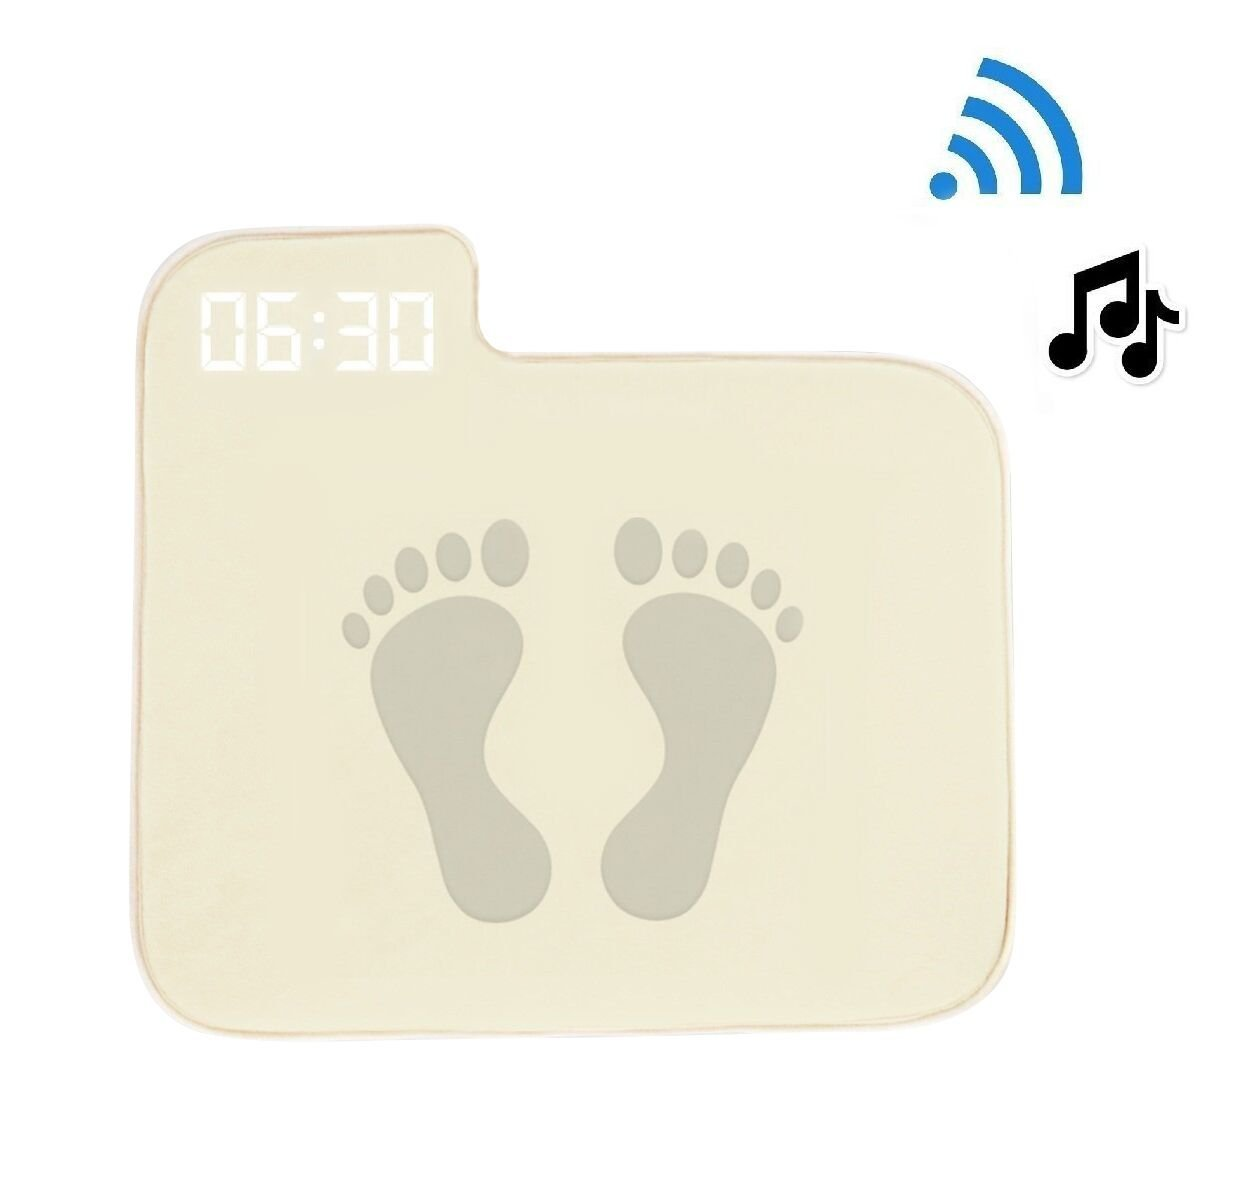 Alarm Clock for Heavy Sleepers,Instecho Rug Carpet Alarm Clock - Digital Display,Pressure Sensitive Alarm Clock with The Softest Touch for Modern Home, Kids, Teens, Girls and Guys(Creamy-White)